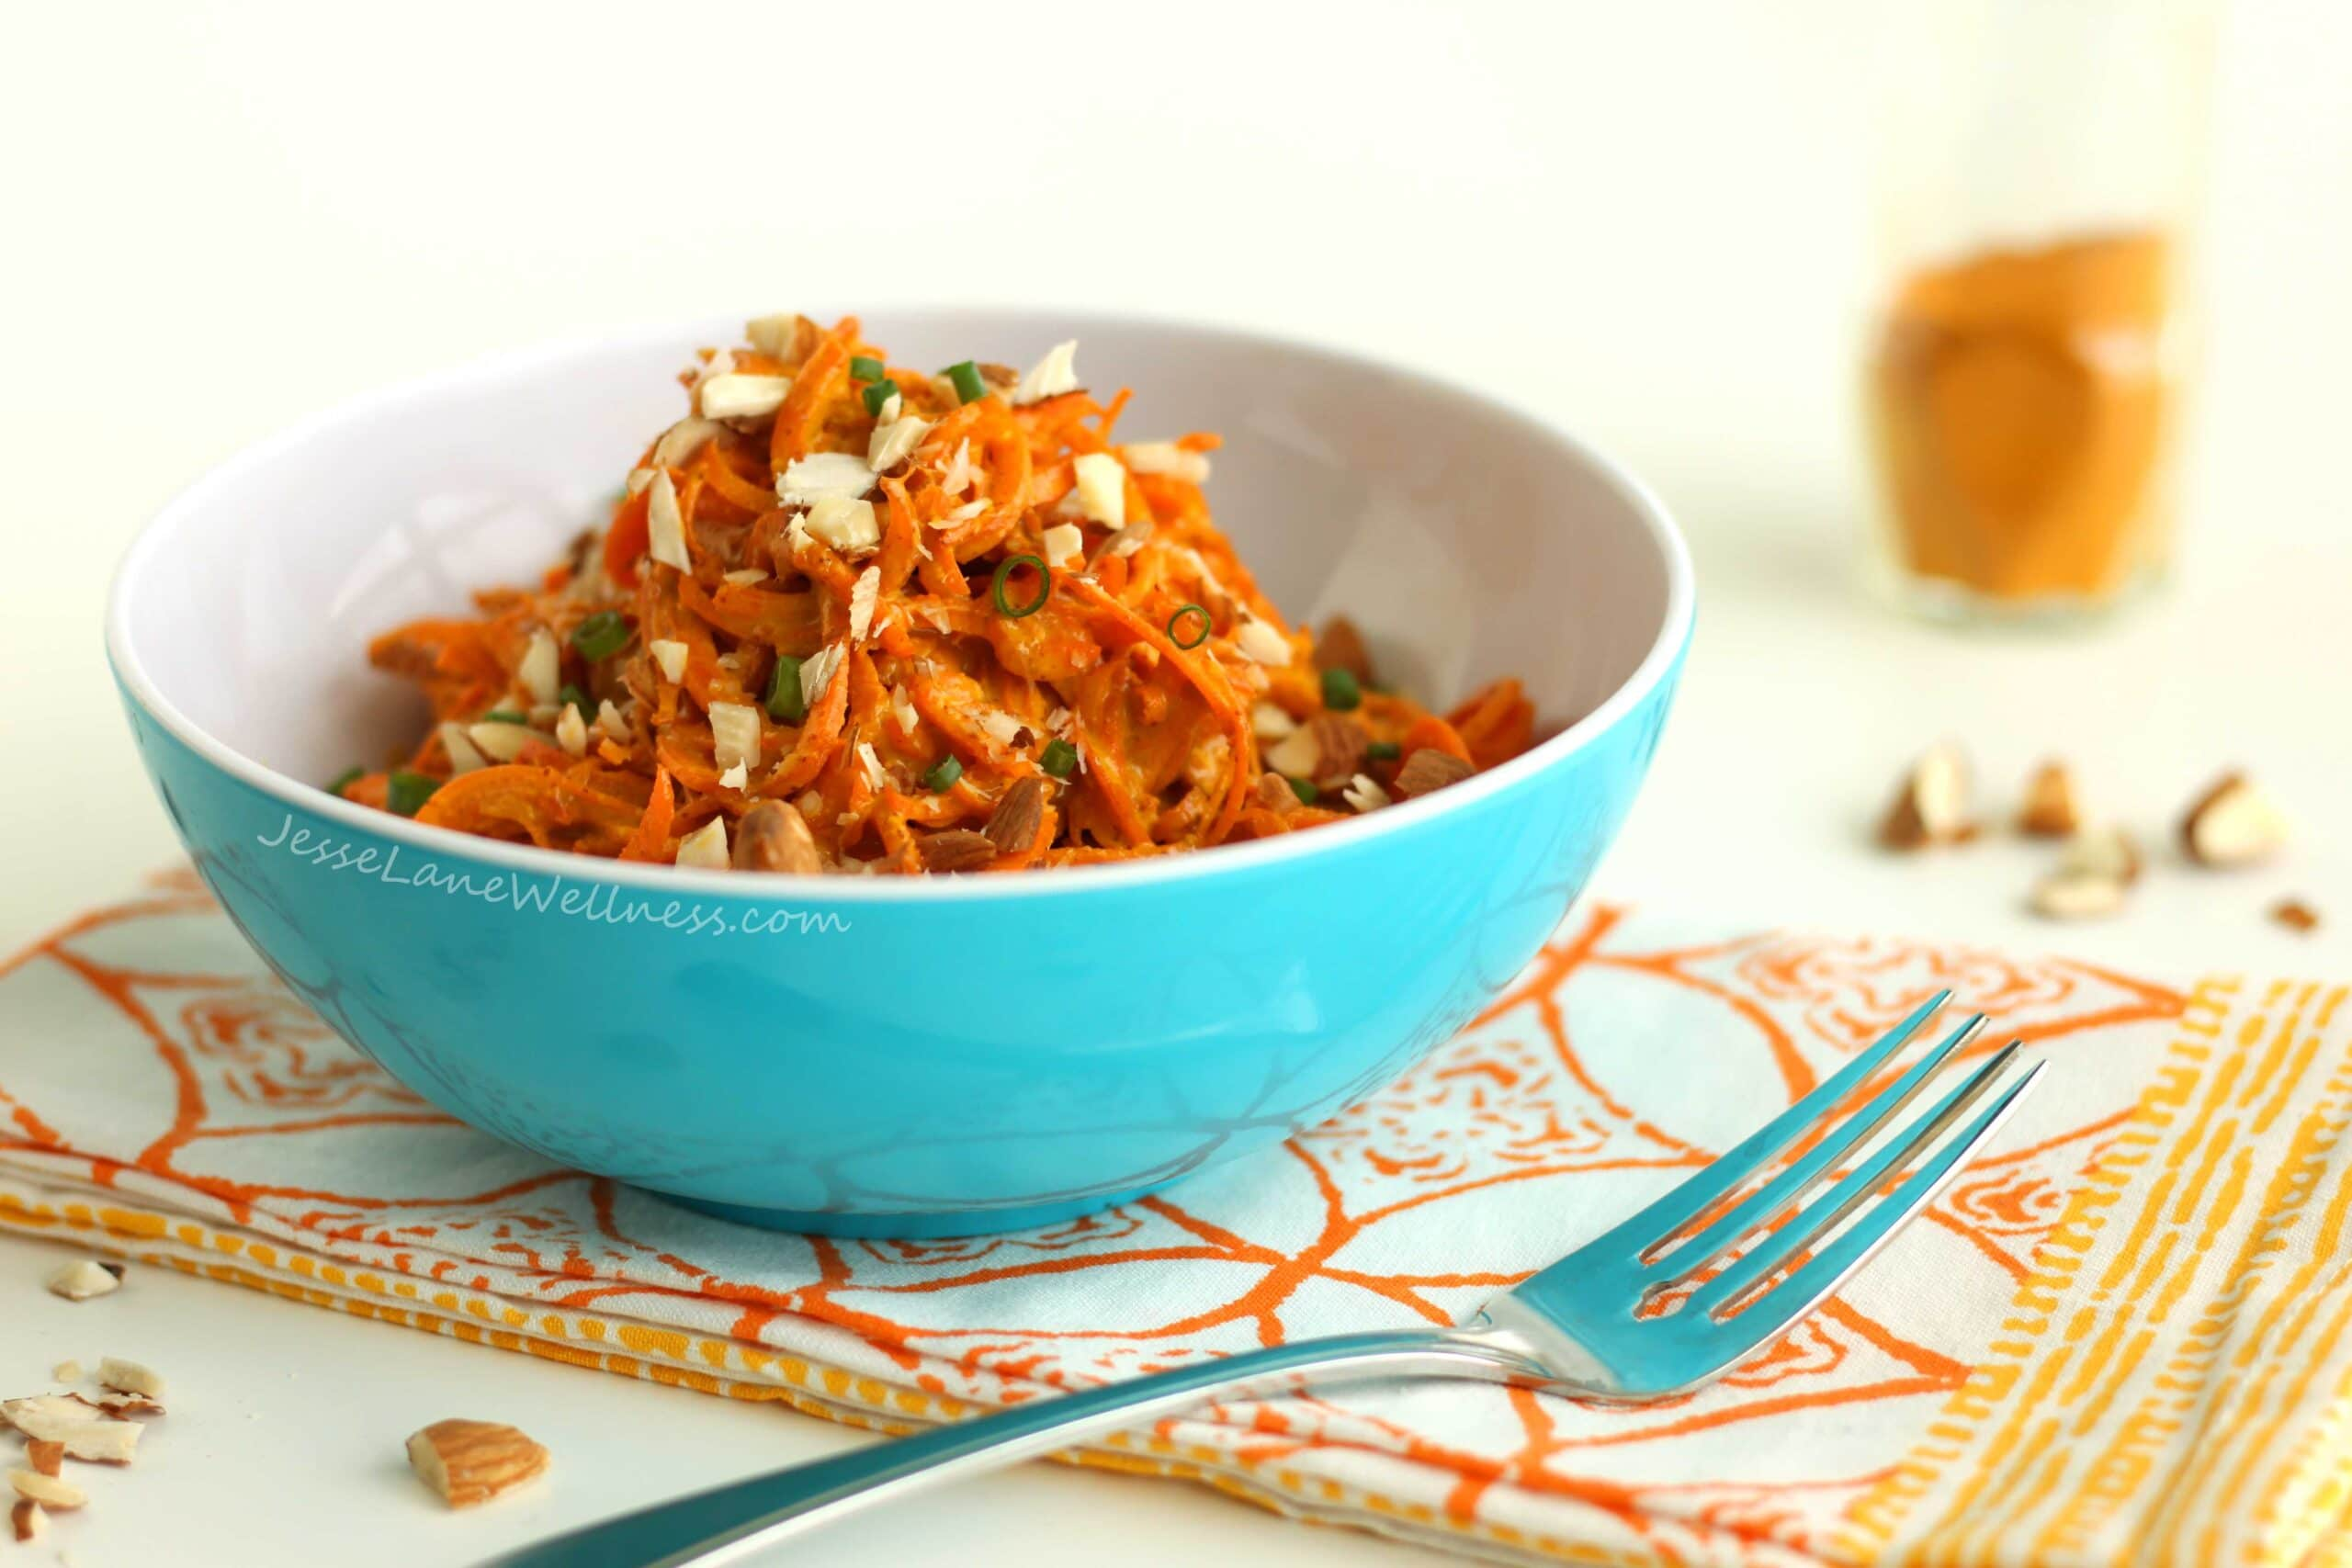 Carrot Salad with Creamy Turmeric Sauce by @jesselwellness #turmeric #salad